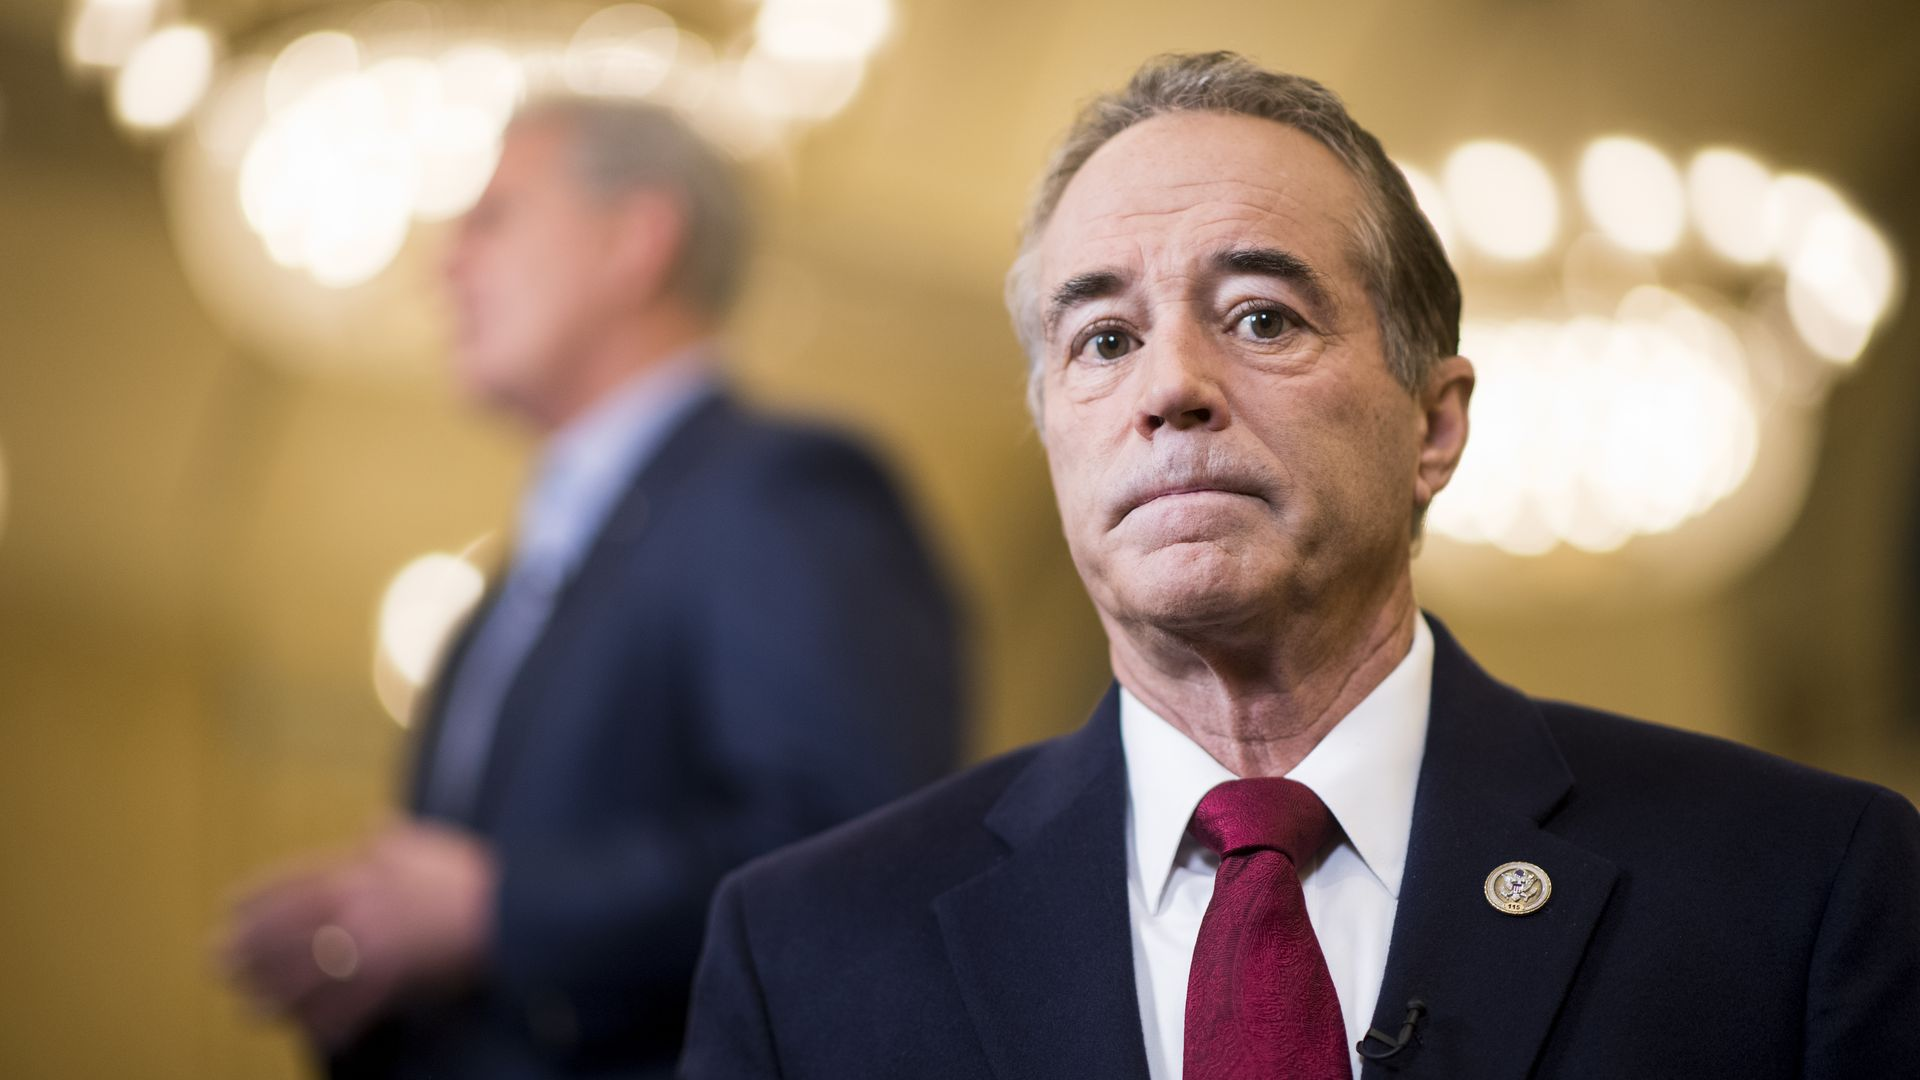 GOP Congressman Chris Collins raises $5,000 in Q1, no individual contributions